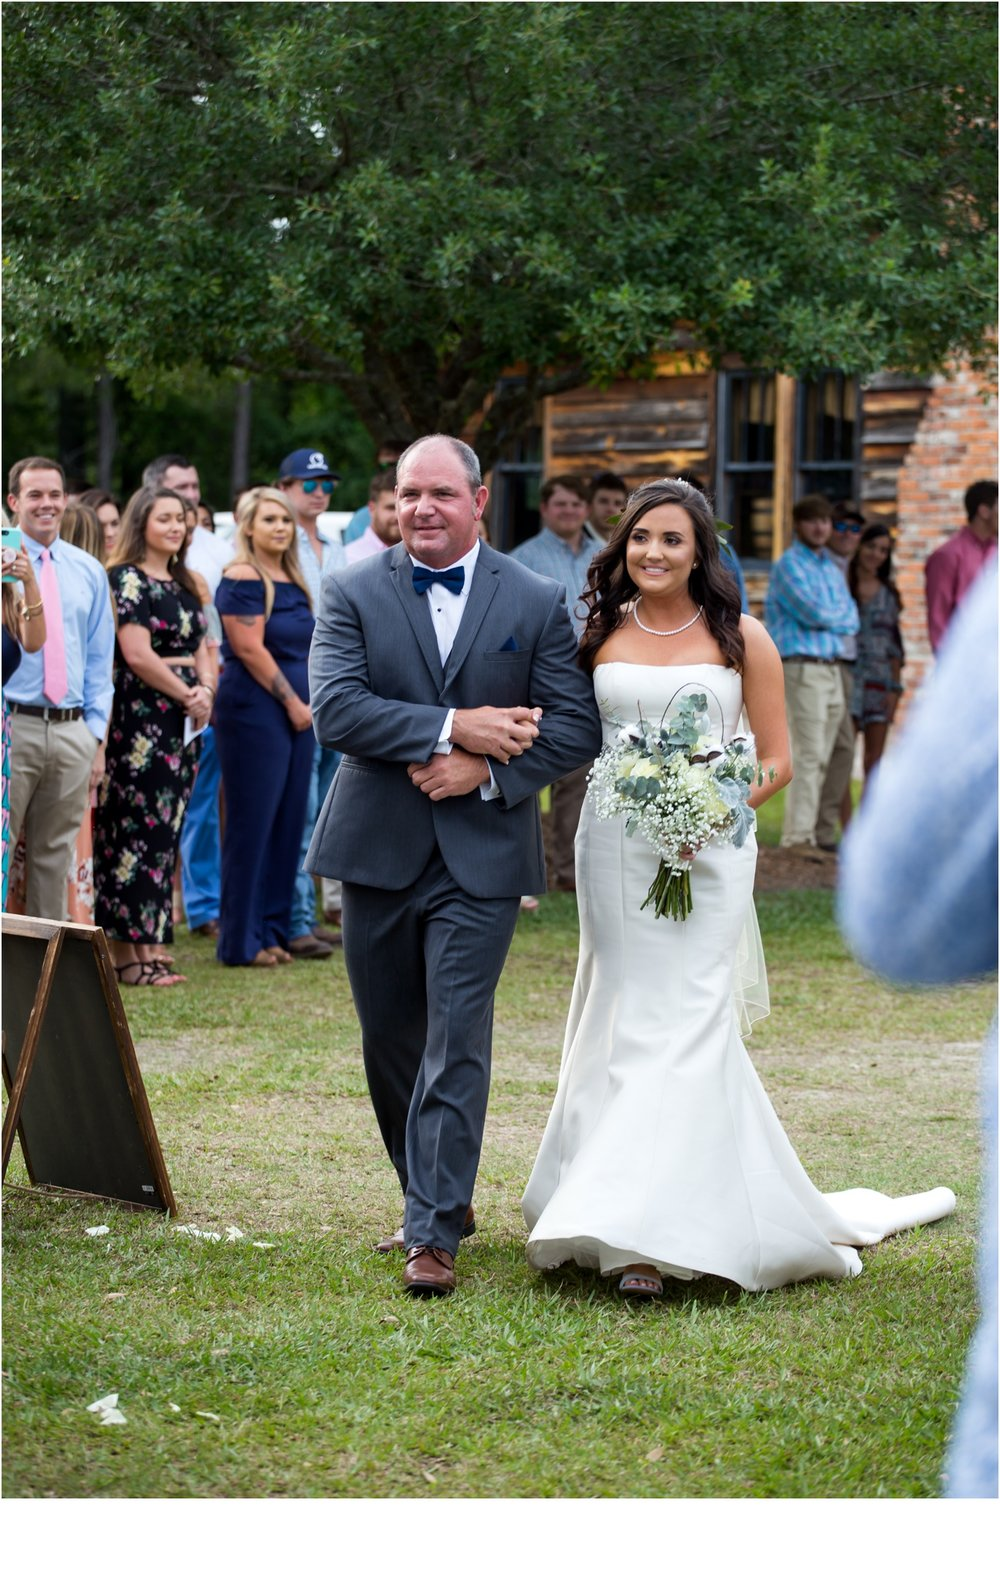 Rainey_Gregg_Photography_St._Simons_Island_Georgia_California_Wedding_Portrait_Photography_0958.jpg